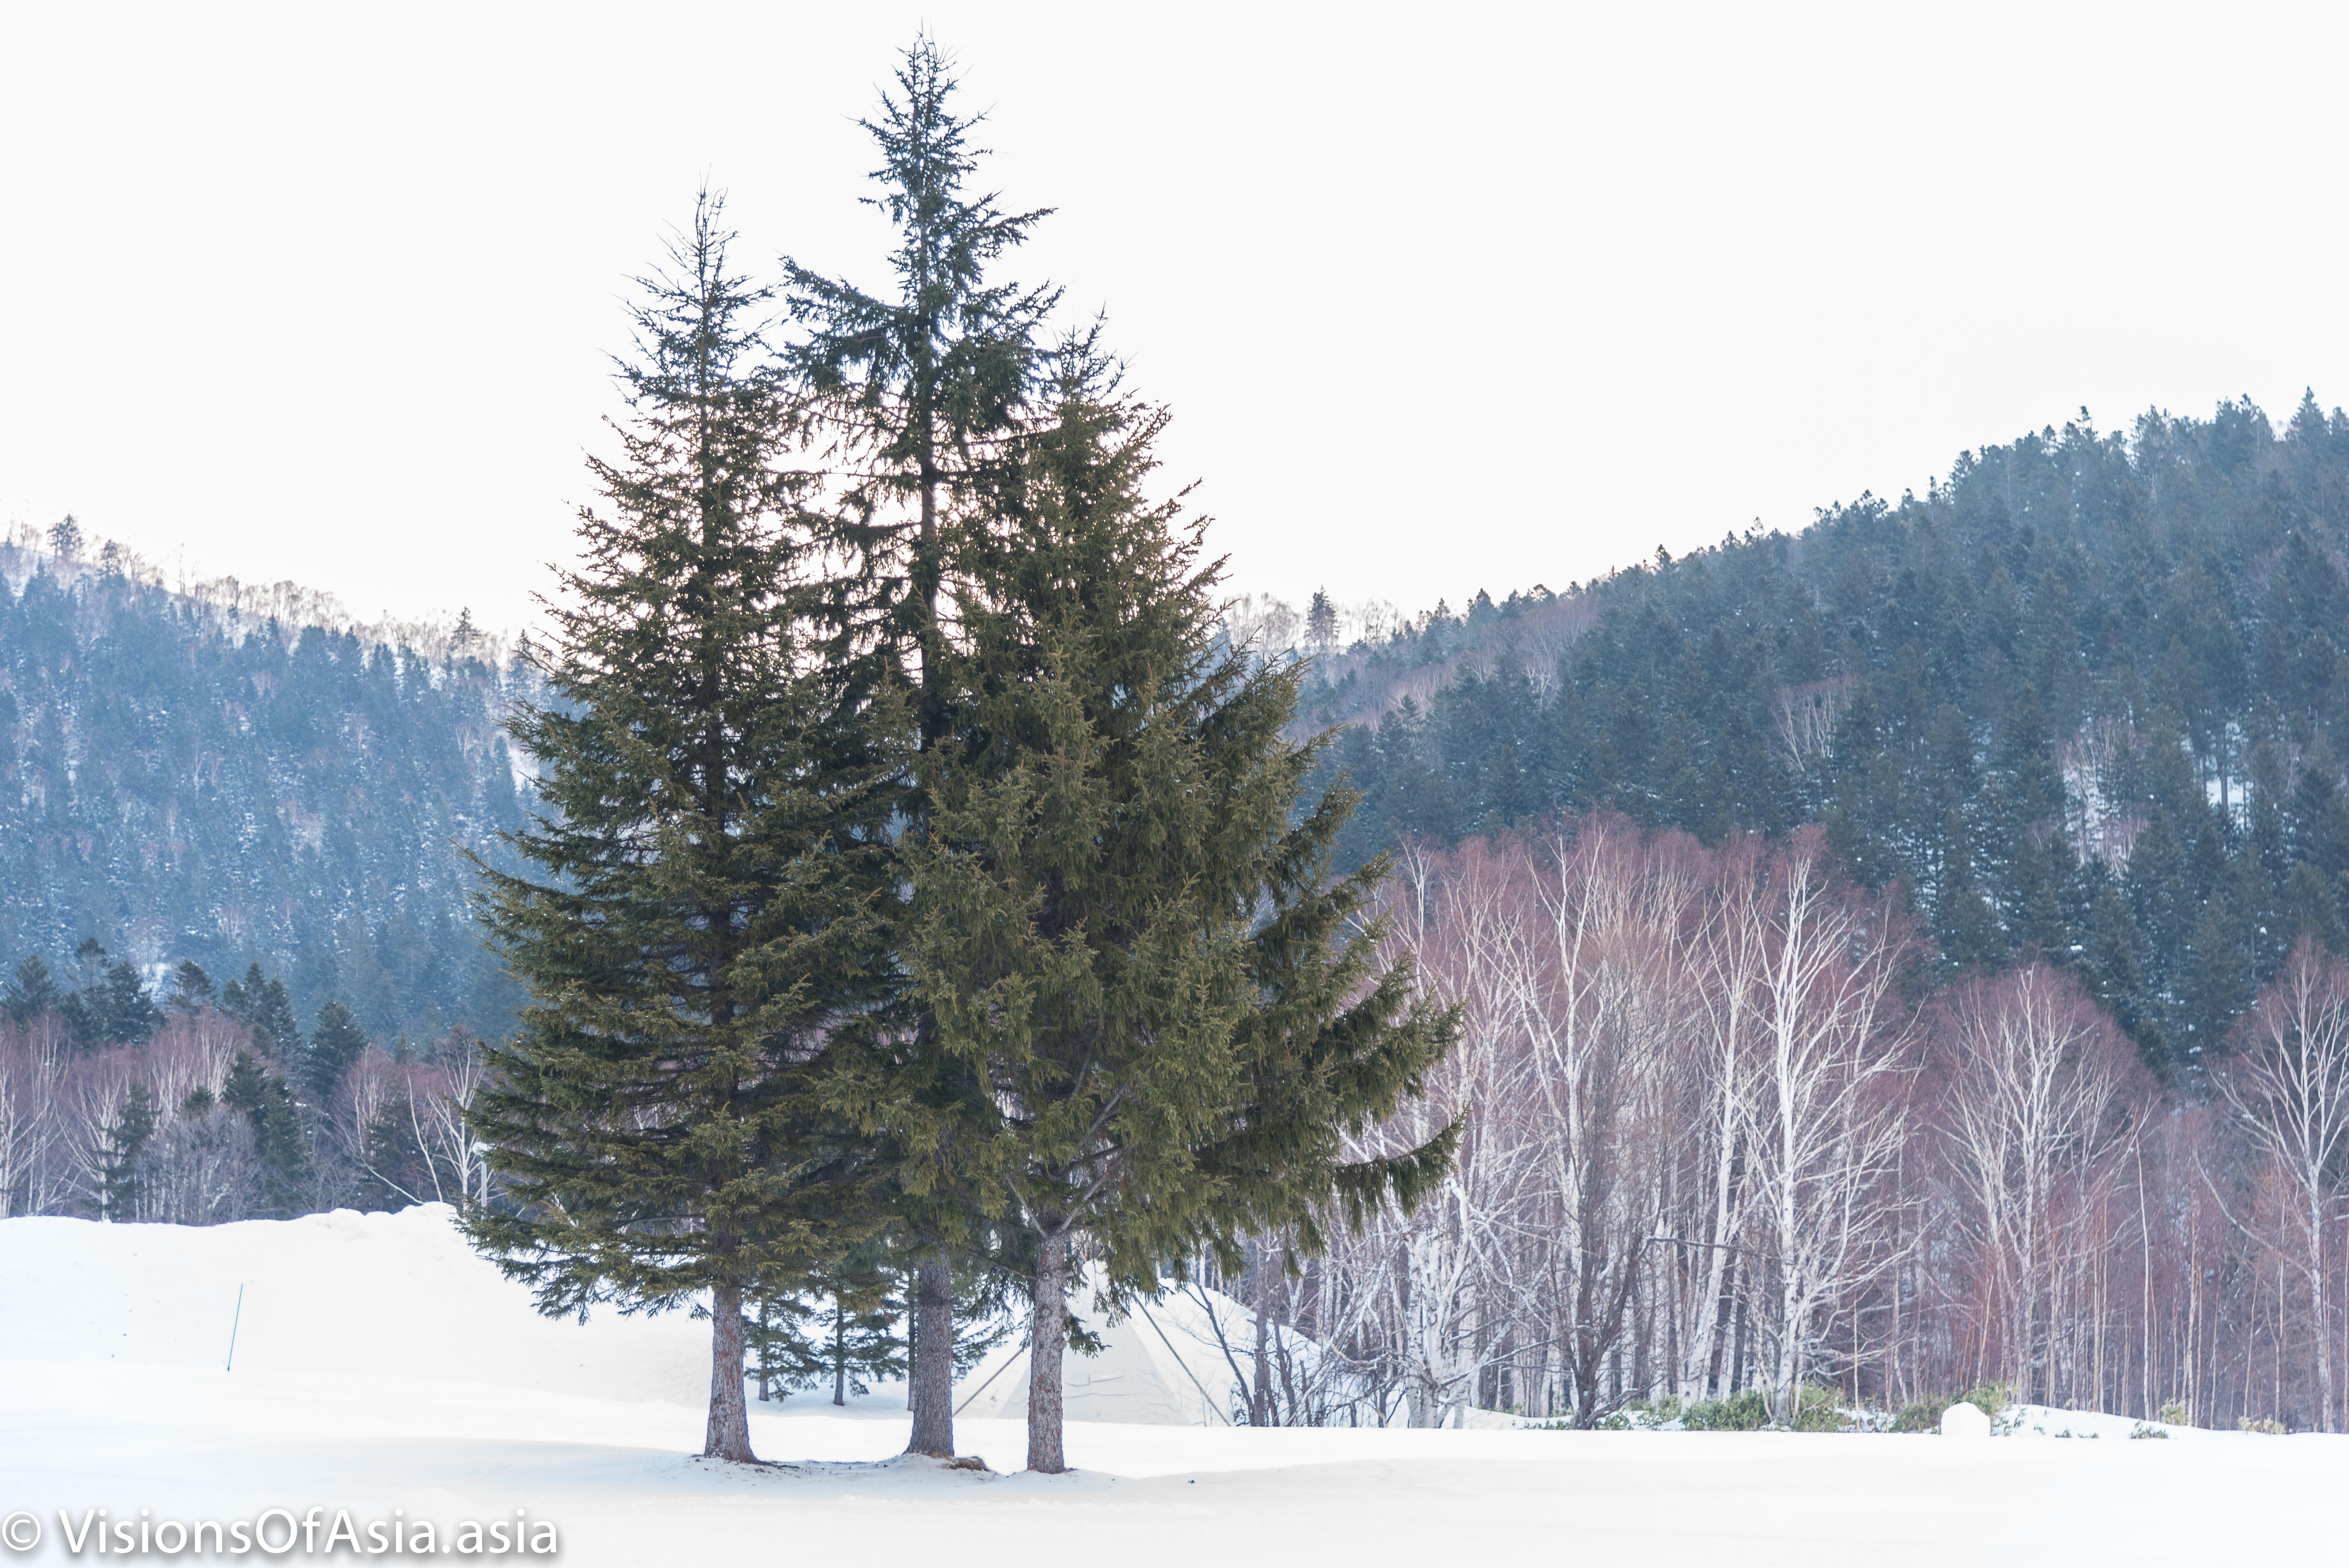 Fir trees in Tomamu